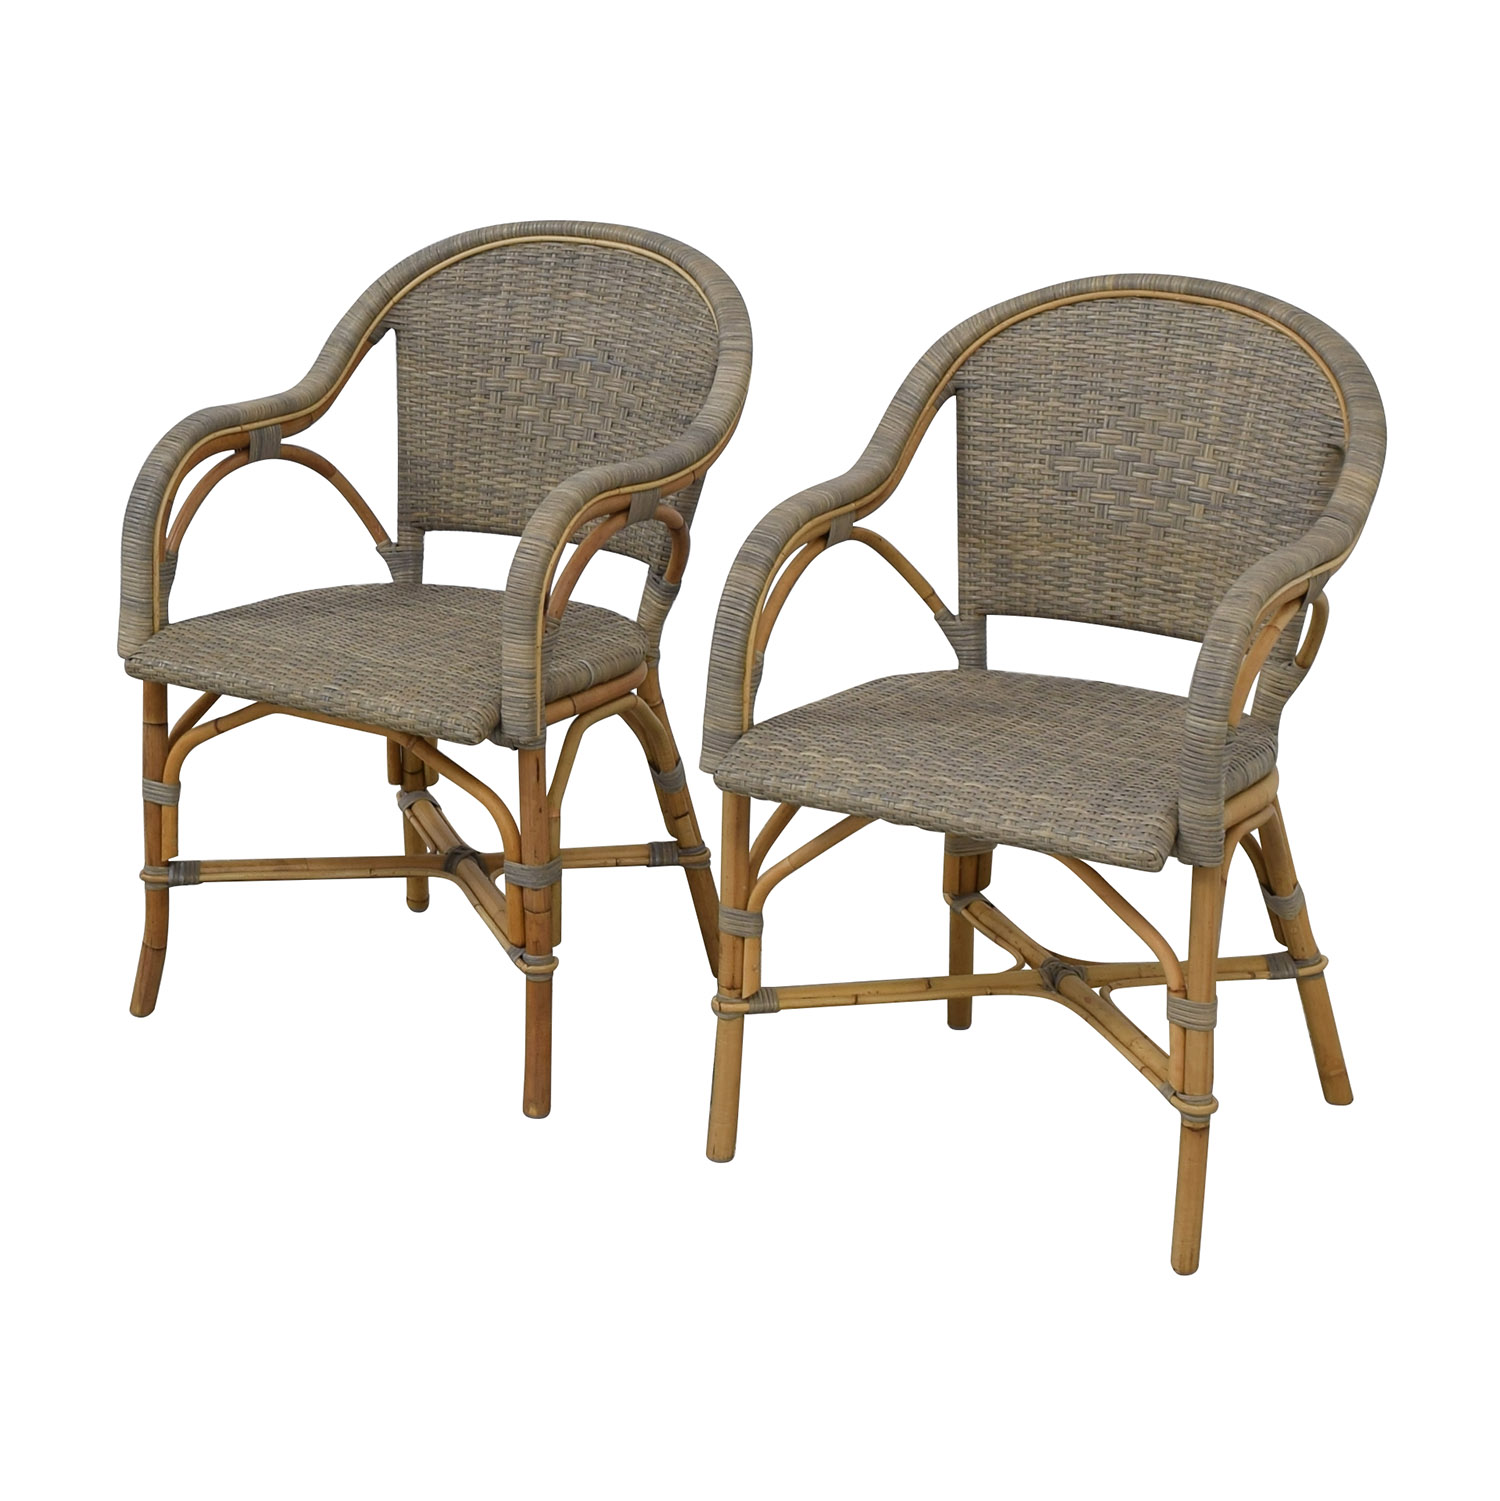 buy Serena & Lily Sunwashed Riviera Armchairs Serena & Lily Chairs